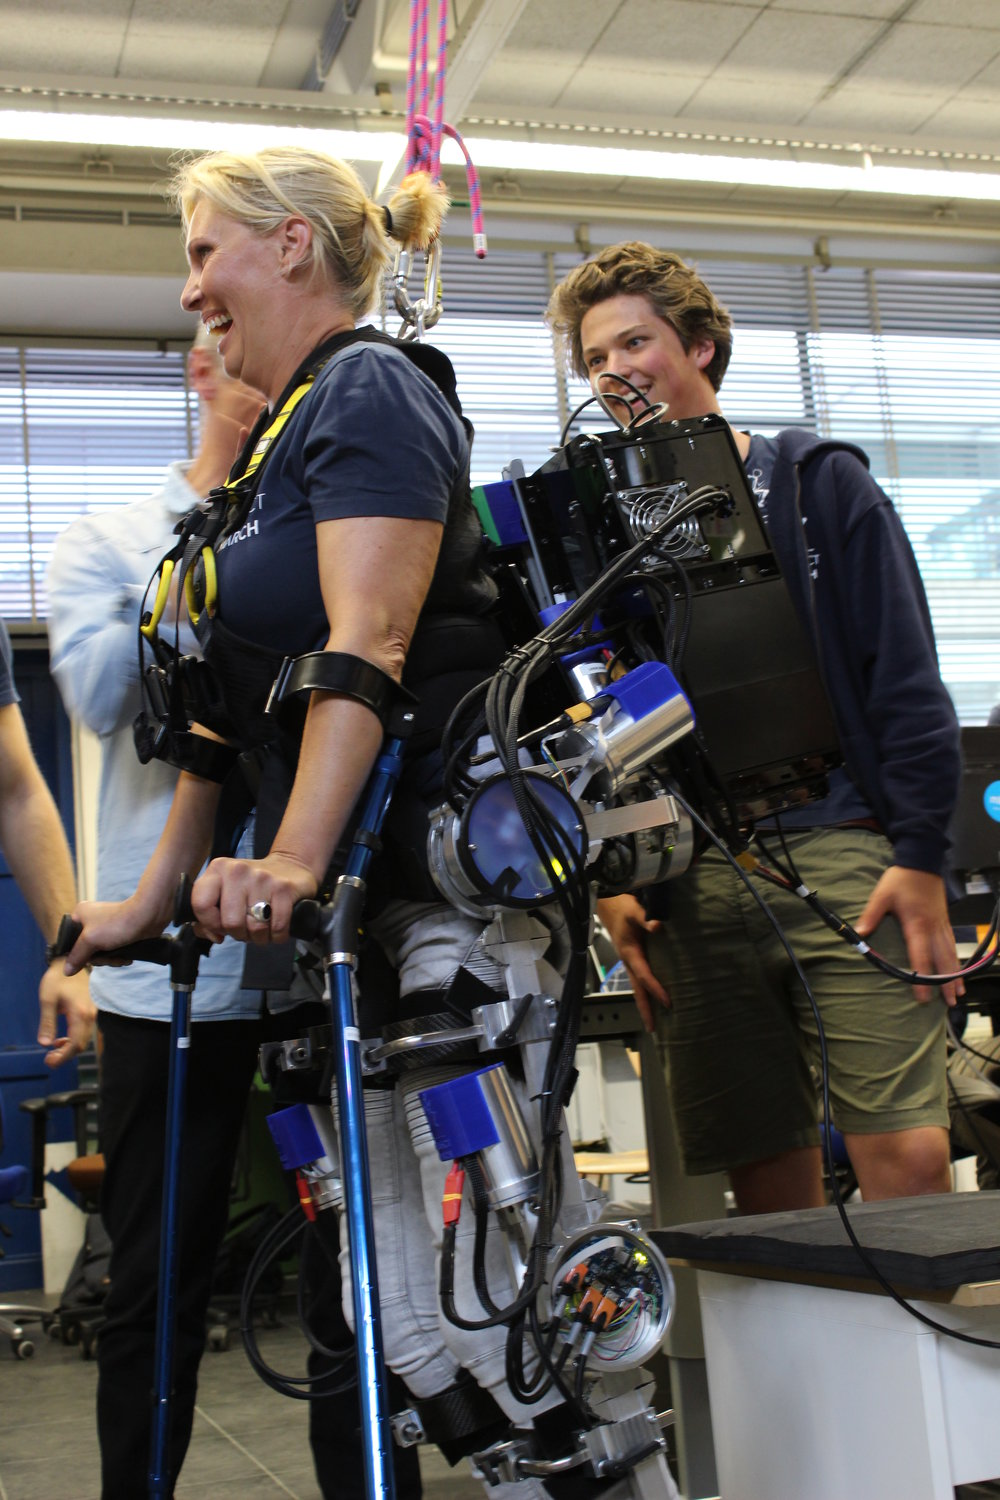 Vision and Mission -  Every year a group of highly motivated students and one pilot will form Project MARCH. We strongly believe that the exoskeleton is the solution for people with a spinal cord injury. Together they strive every day with one goal in mind: